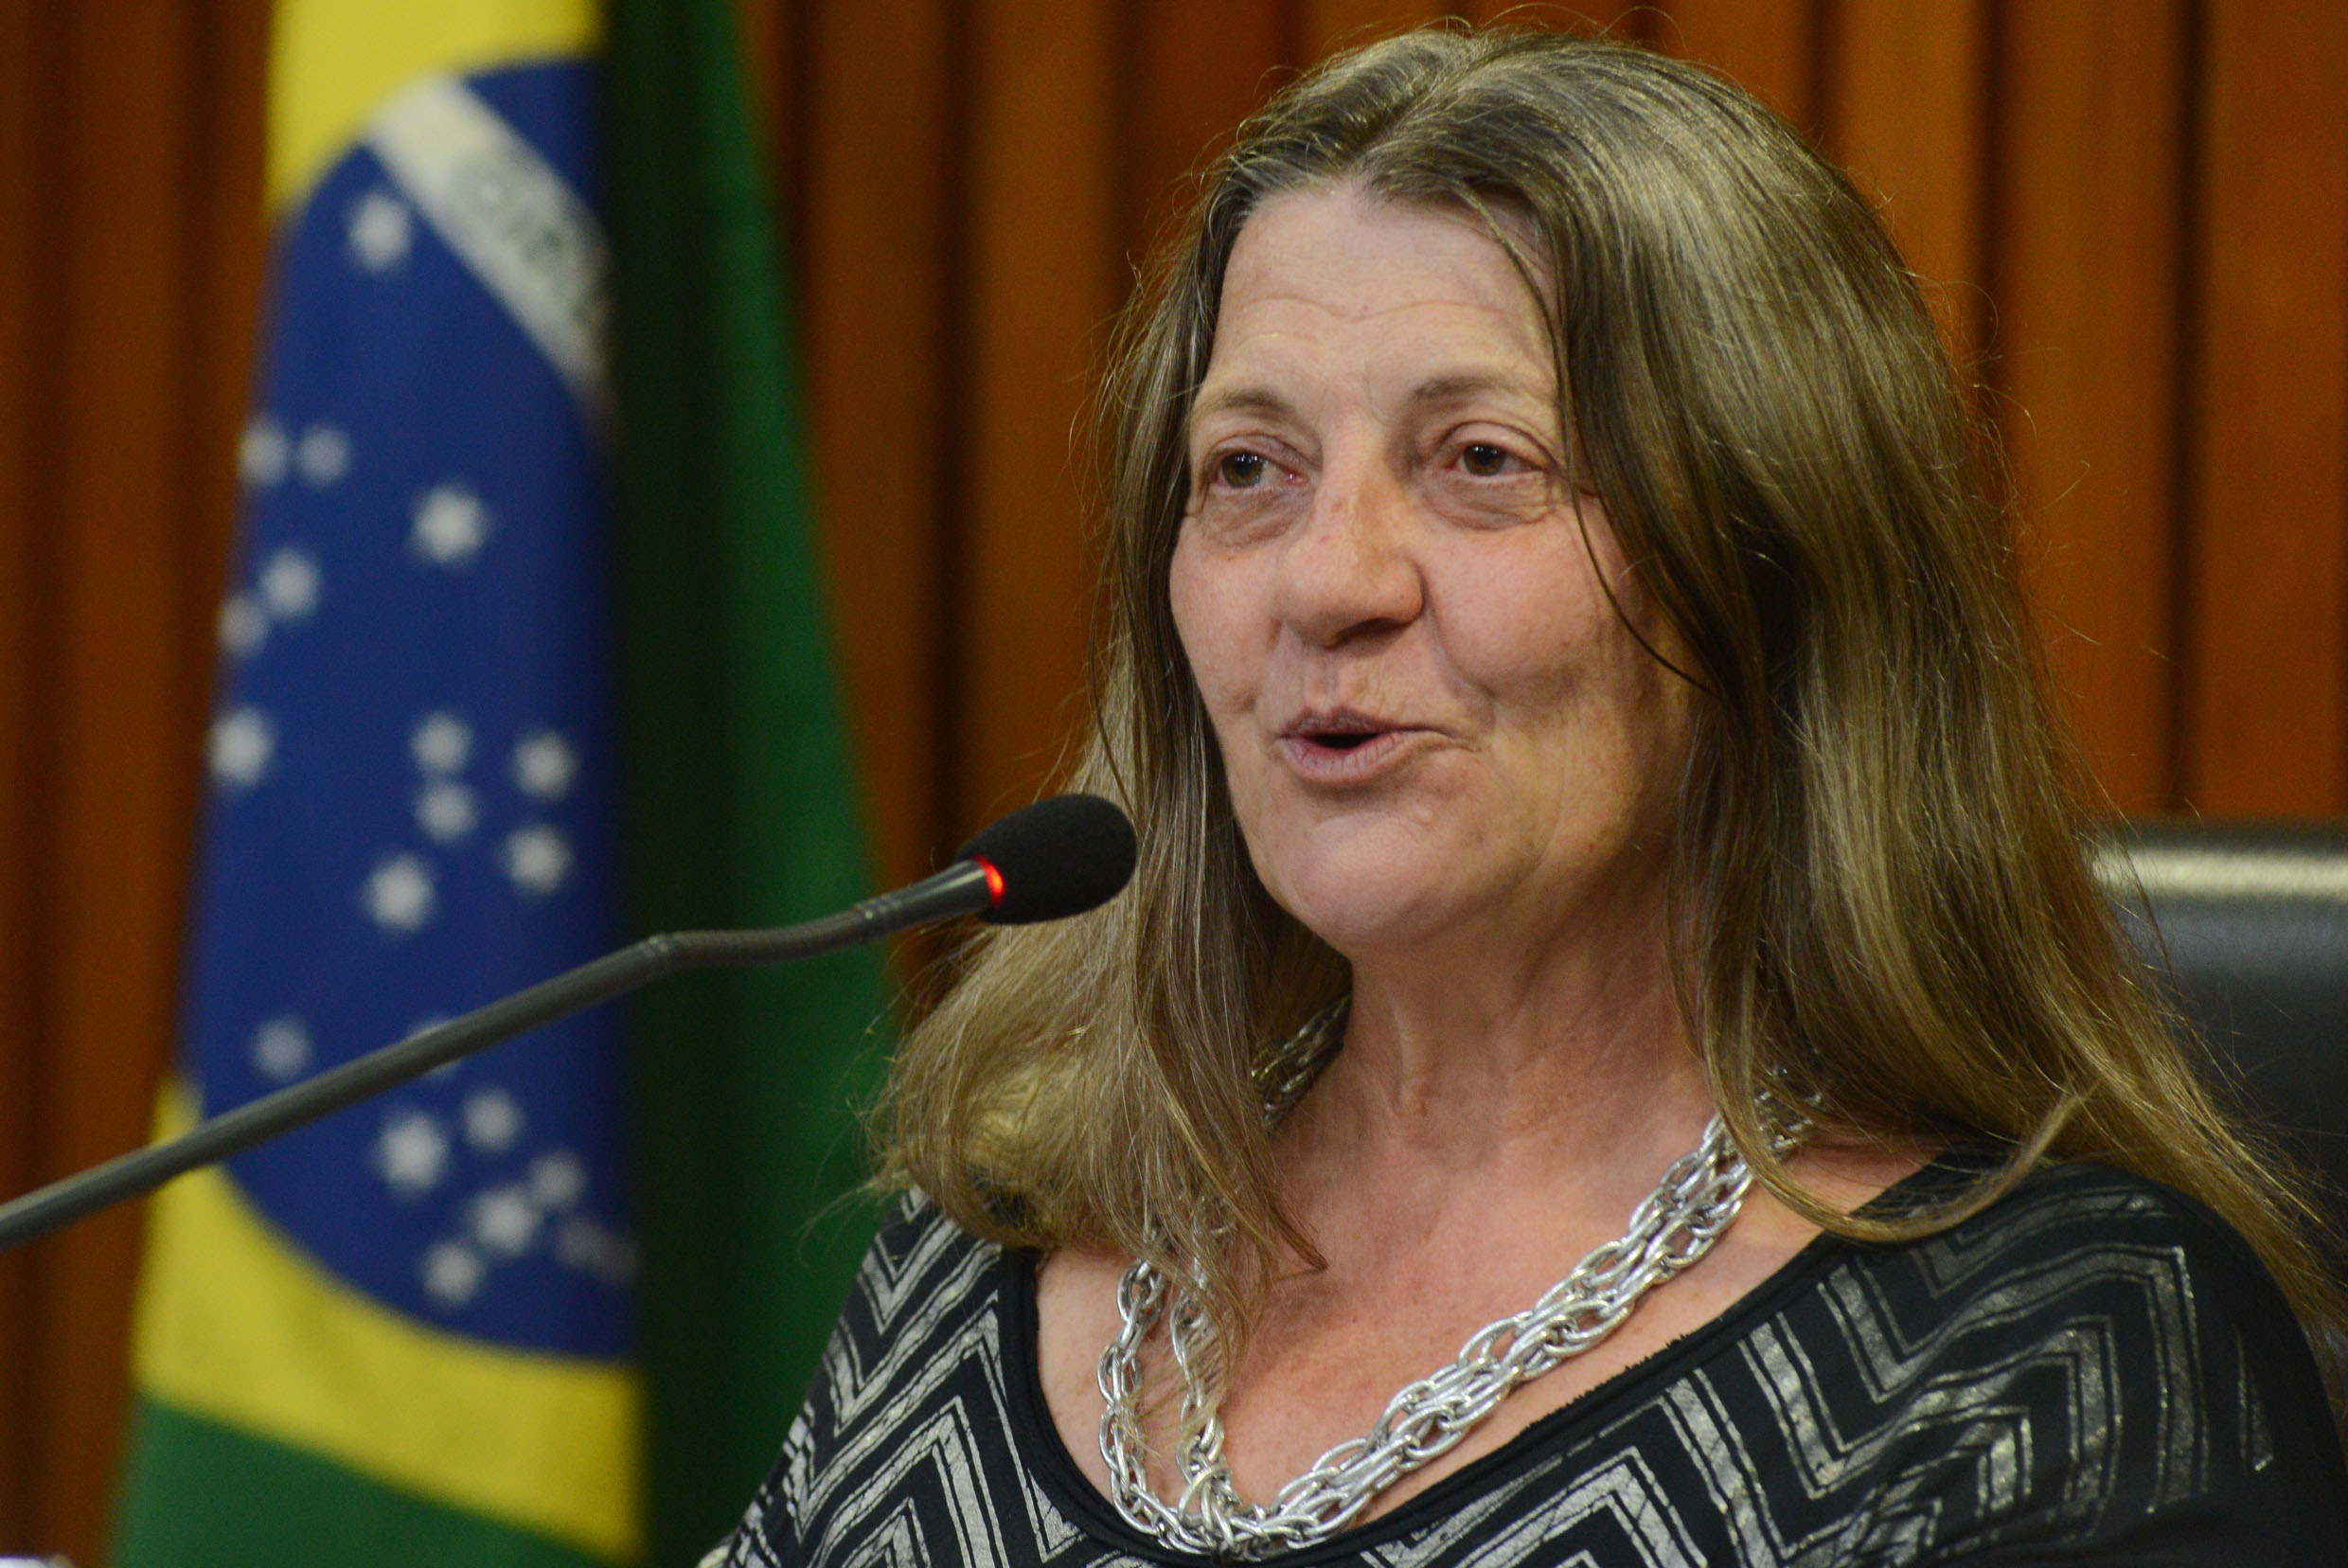 Marisa Fernandes, militante lésbica e feminista desde 1978.<a style='float:right' href='https://www3.al.sp.gov.br/repositorio/noticia/N-11-2013/fg149489.jpg' target=_blank><img src='/_img/material-file-download-white.png' width='14px' alt='Clique para baixar a imagem'></a>